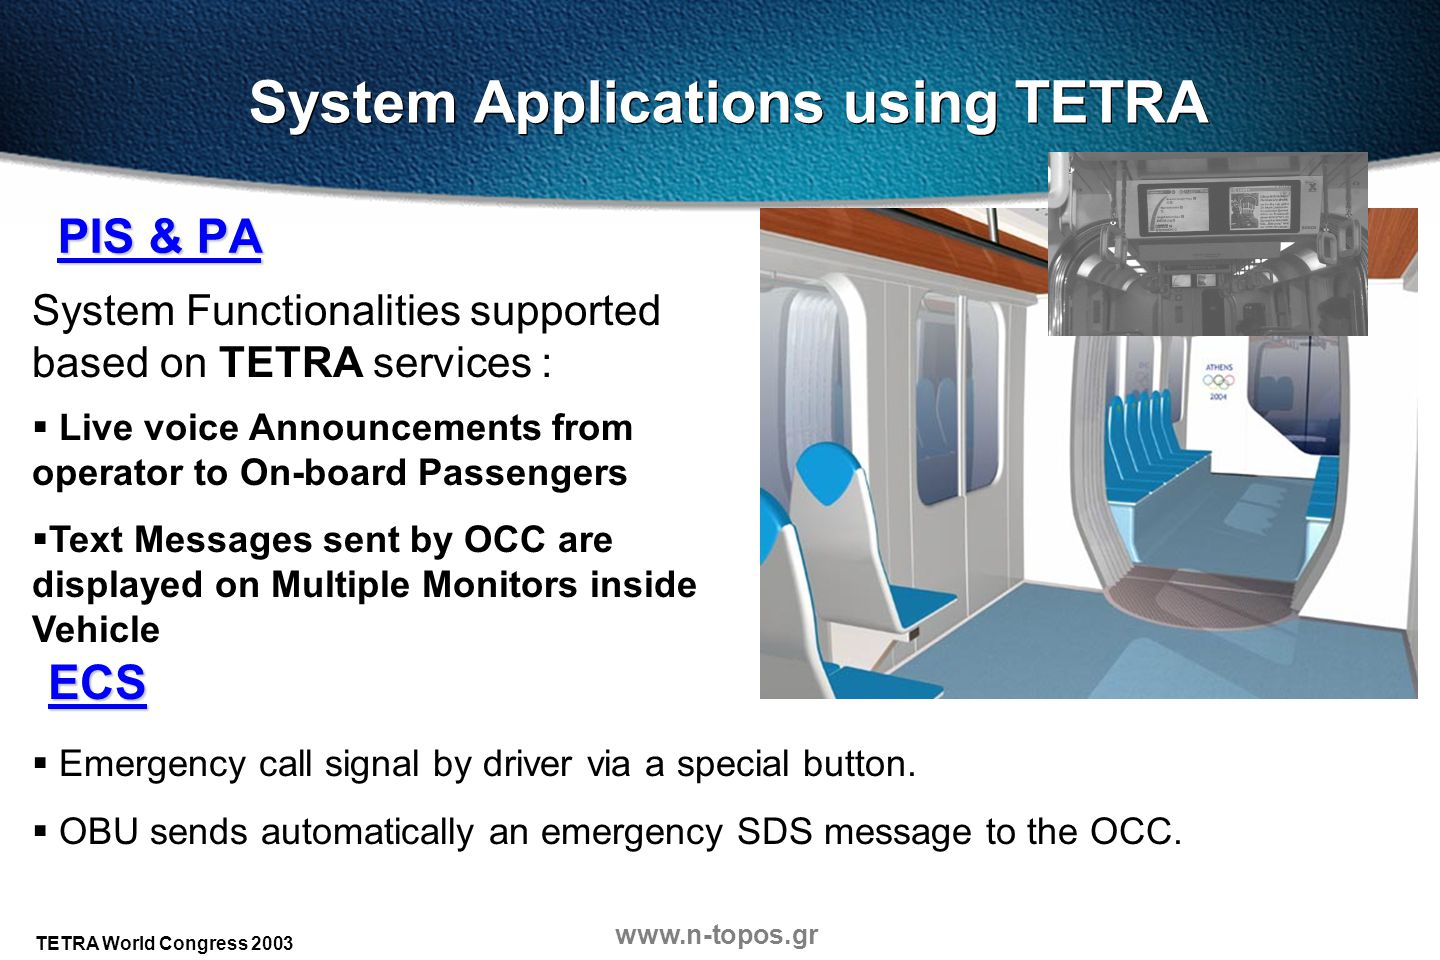 www.n-topos.gr TETRA World Congress 2003 System Applications using TETRA PIS & PA Live voice Announcements from operator to On-board Passengers Text M